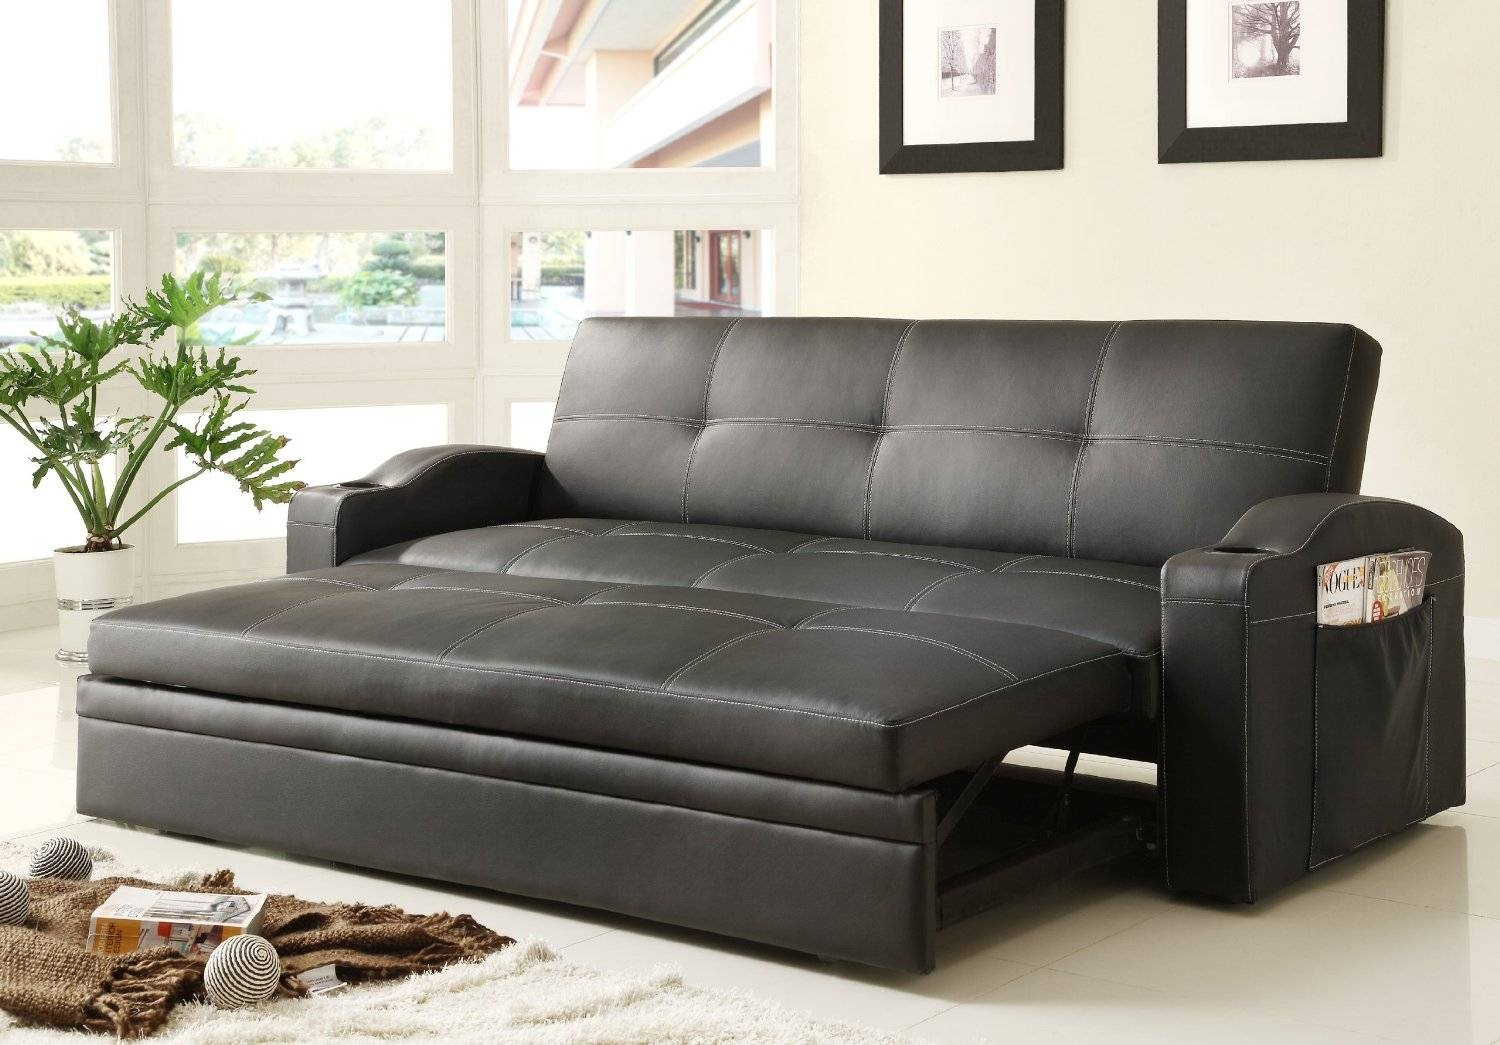 Furniture. Black Leather Sleeper Sofa Combined With Table Lamp On regarding Black Leather Sectional Sleeper Sofas (Image 12 of 30)